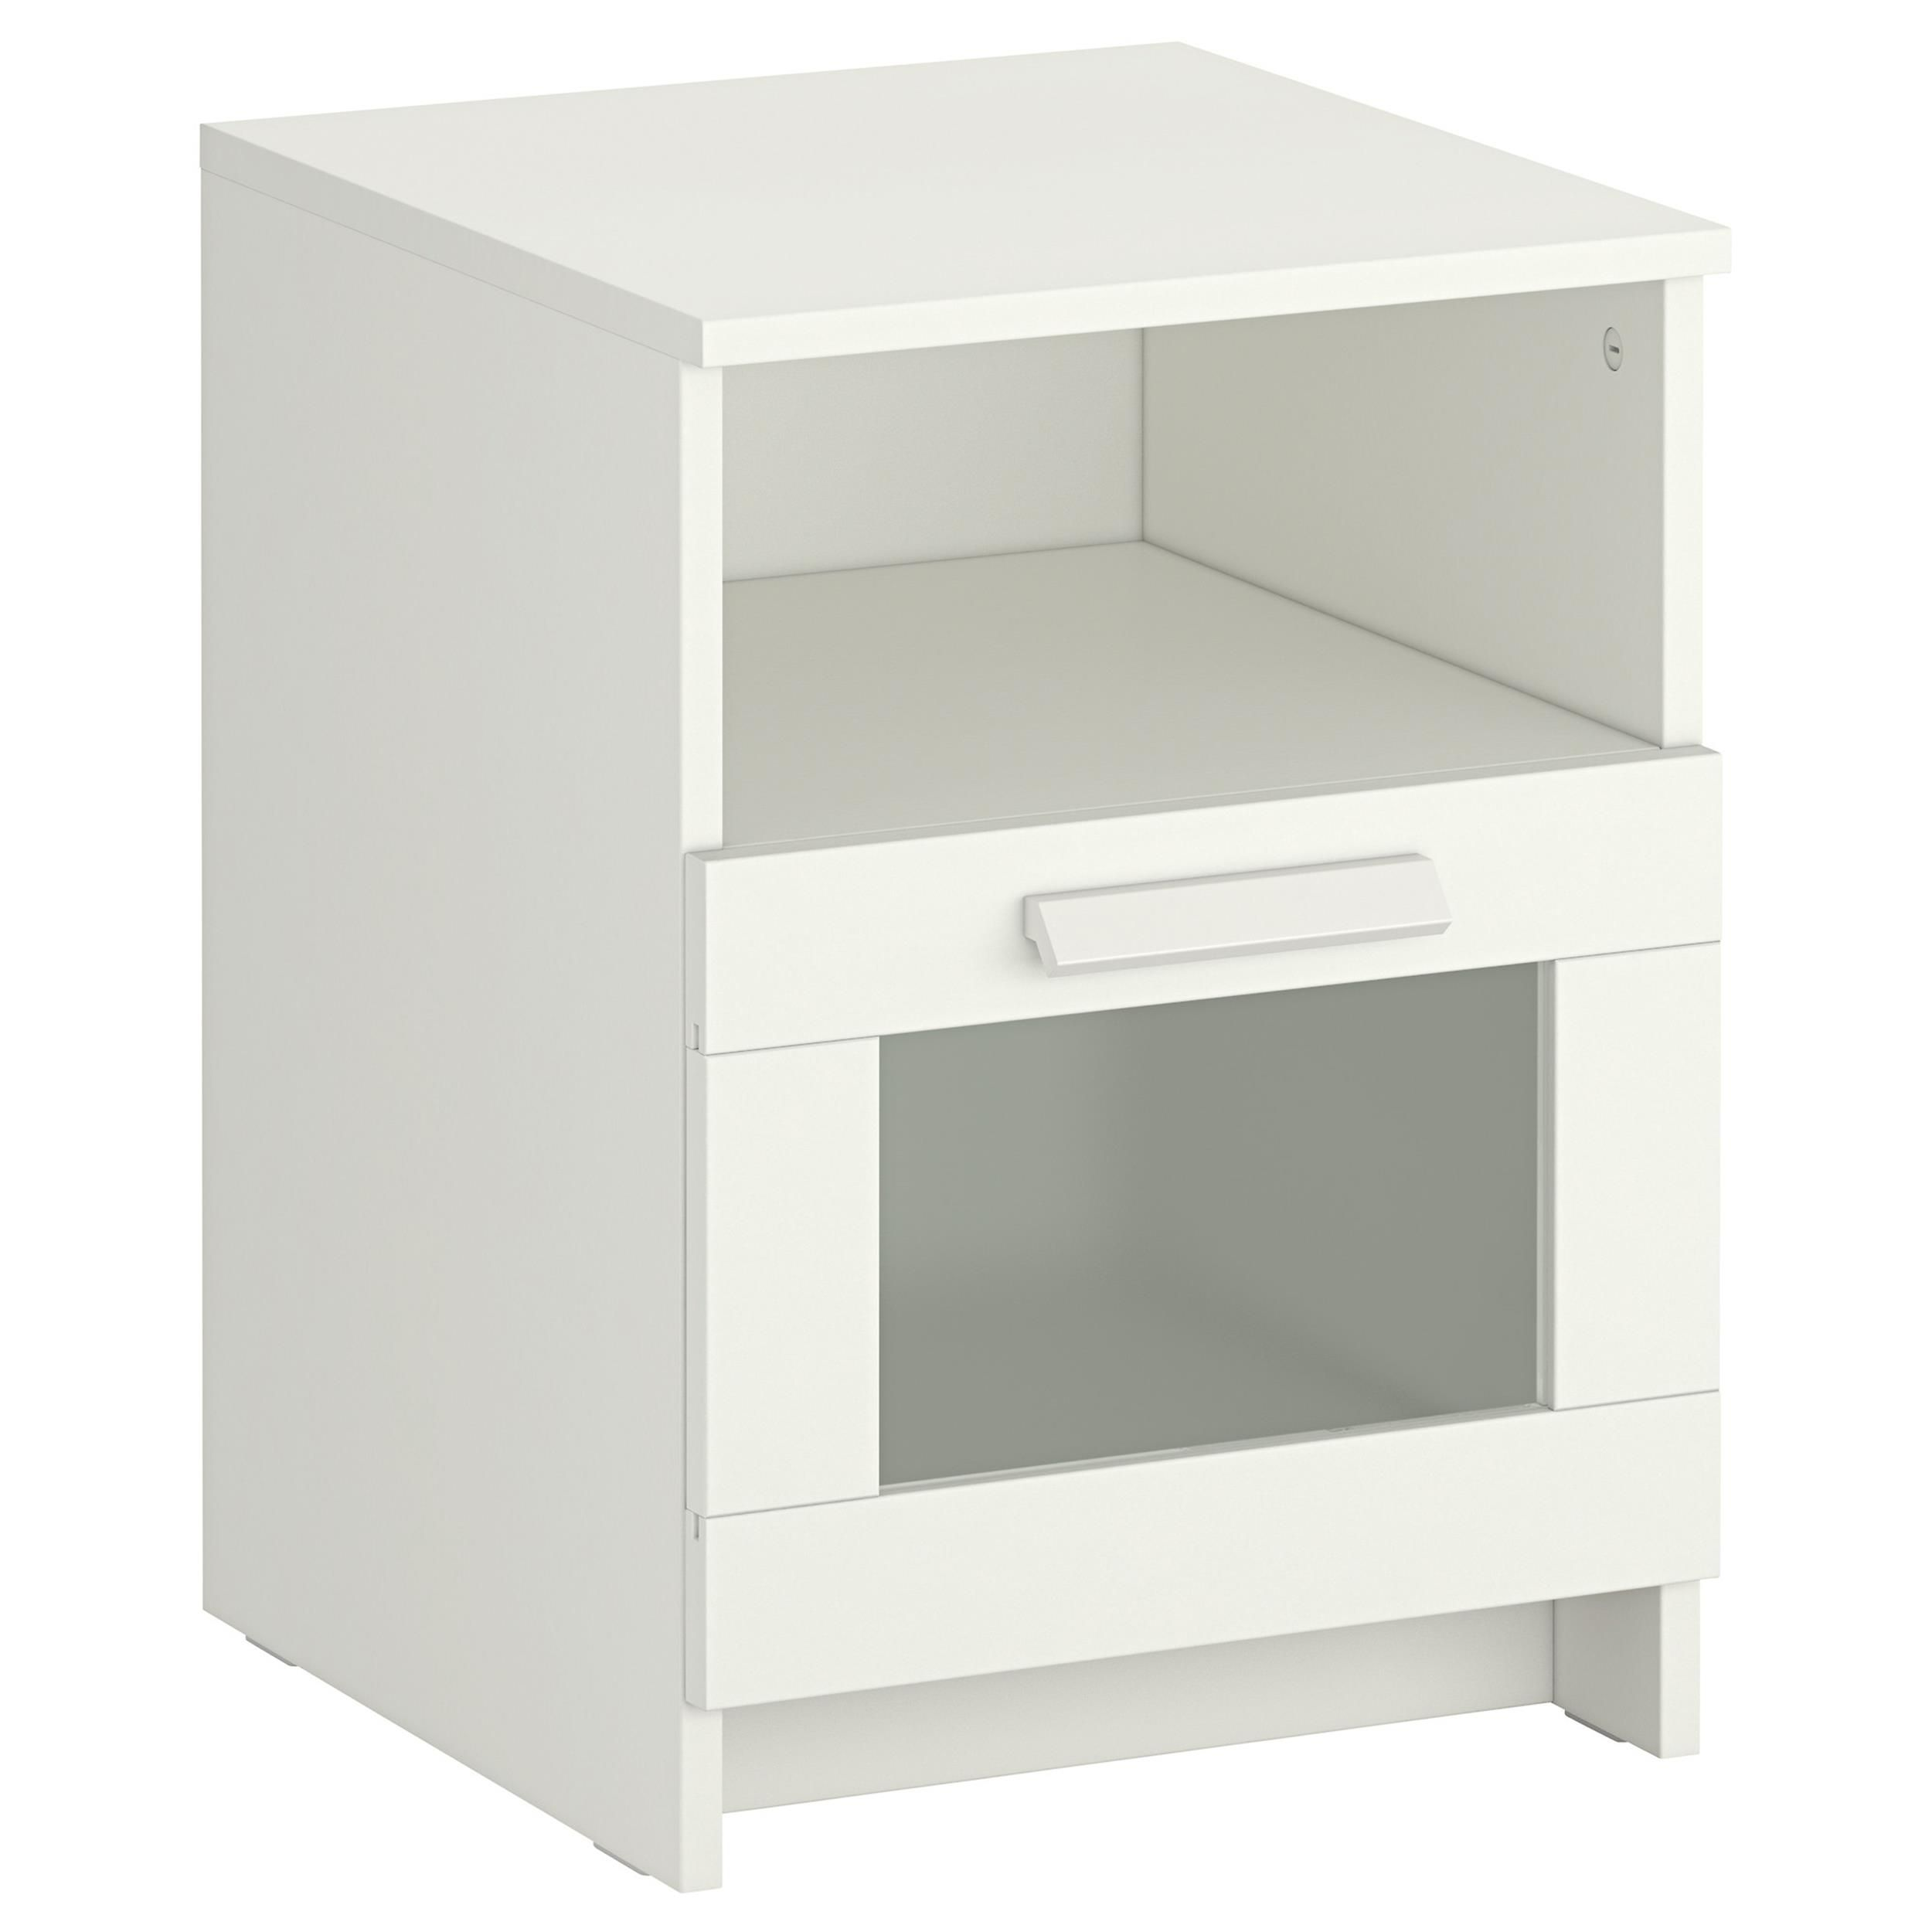 Best Elegant Bedroom Small Storage Design With White Nightstands 30